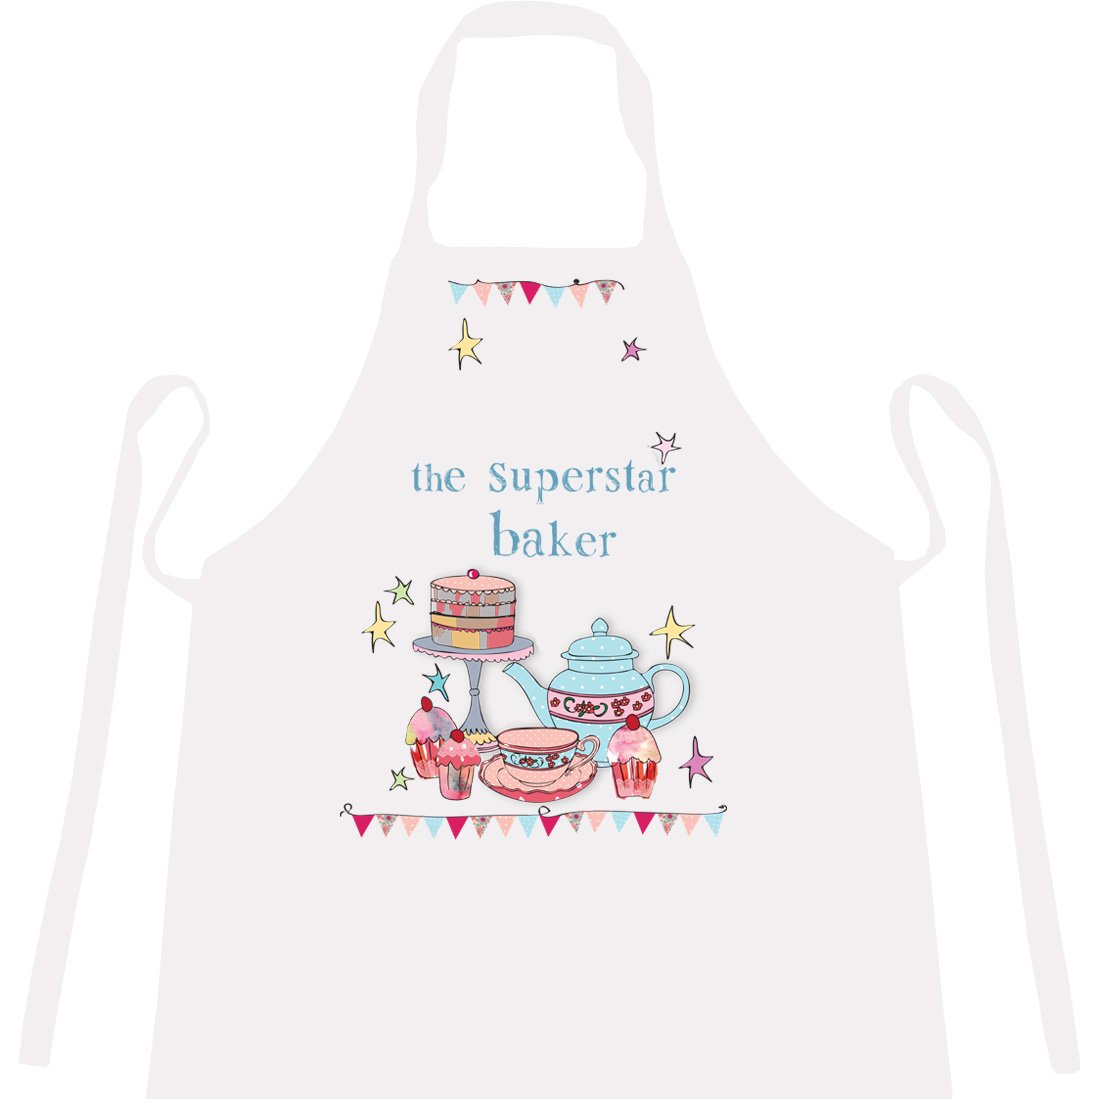 Cookify Personalised Apron 'Superstar Baker' – Novelty, Funny Aprons Men, Women Children (3-5 years 45cm x 37cm)